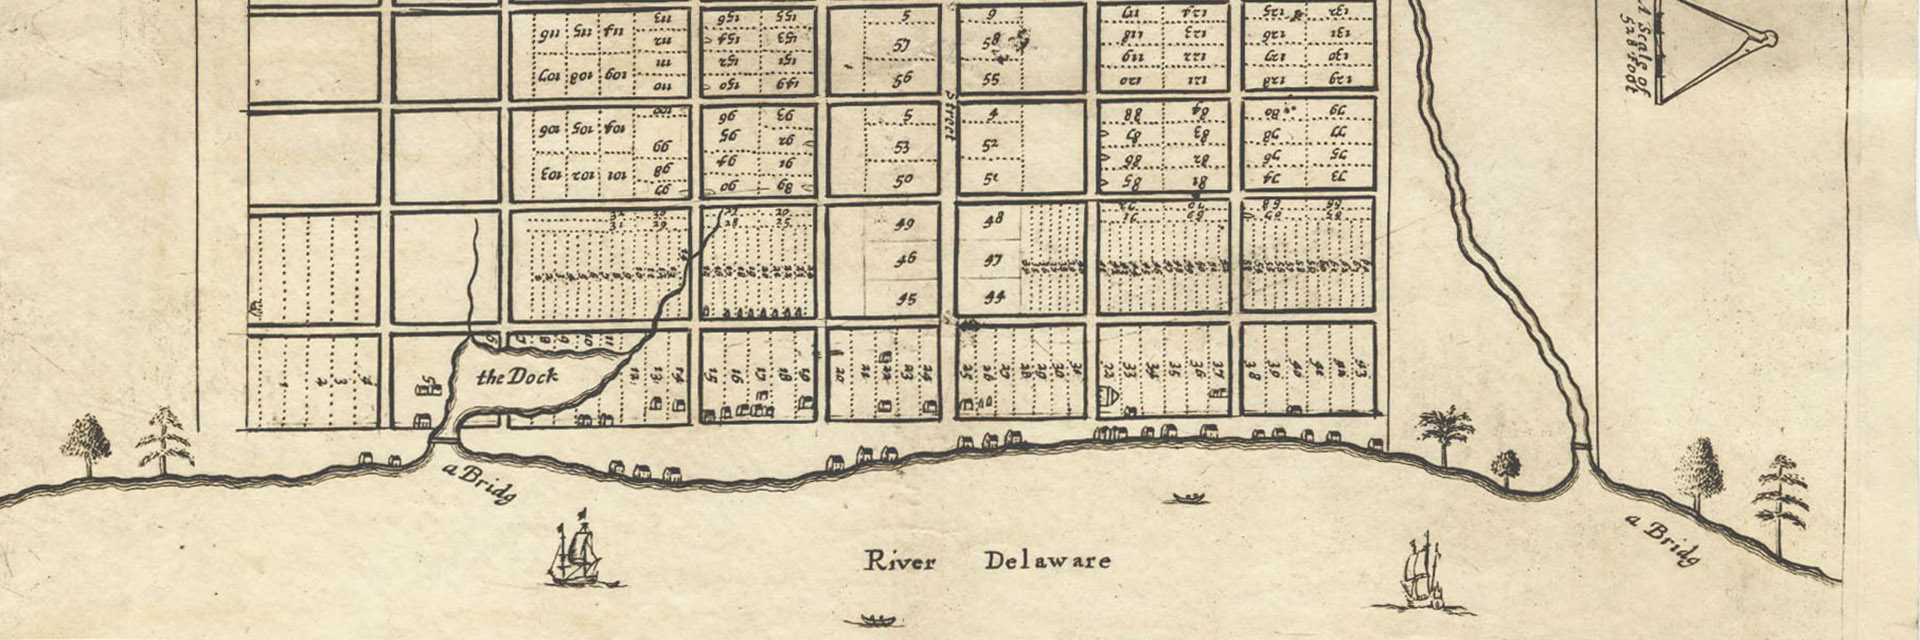 Holmes map of Philadelphia showing location of William Frampton property